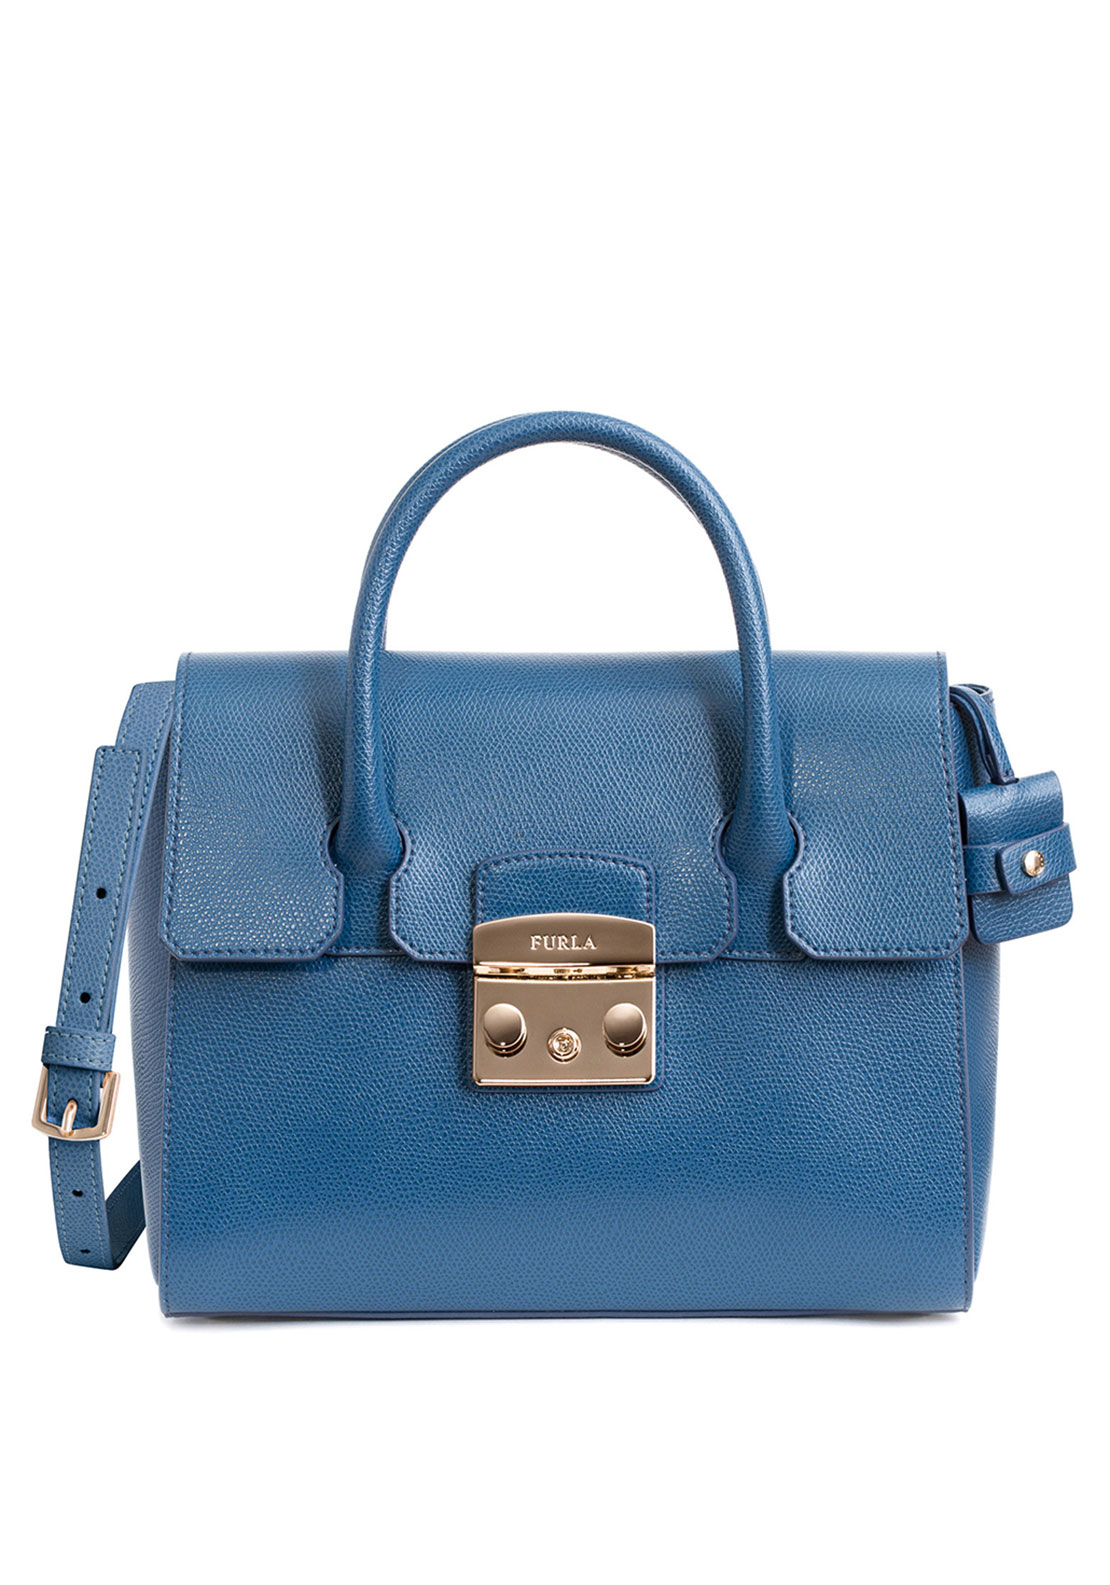 Furla Metropolis Leather Small Satchel Bag, Blue